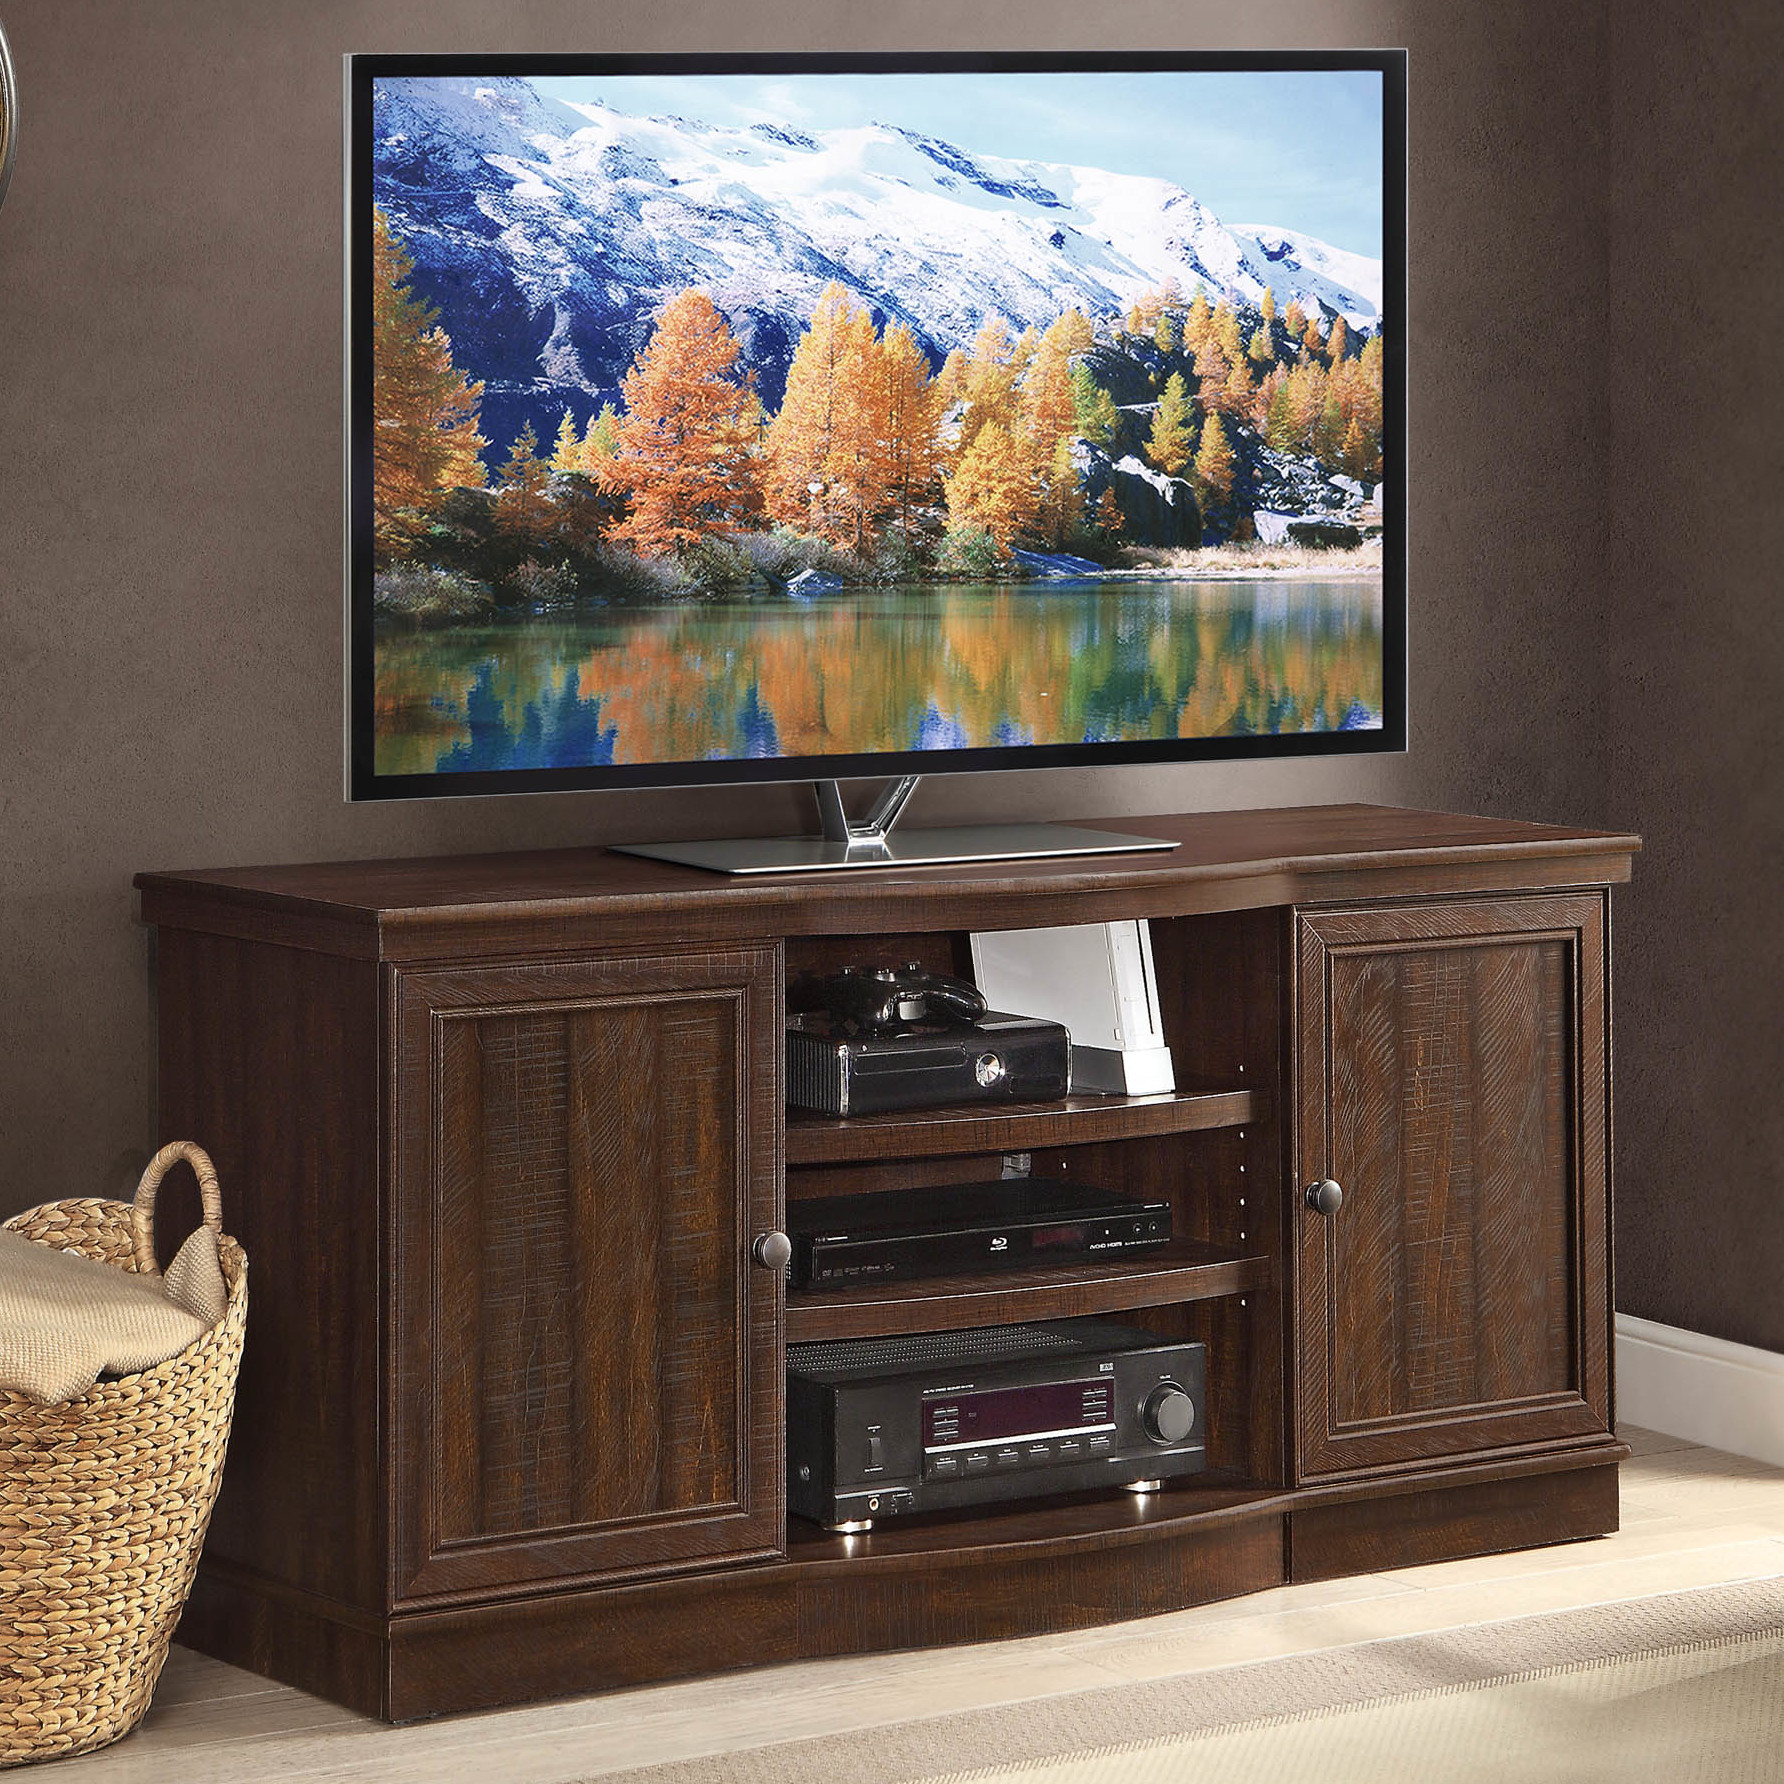 Great whalen tv stand for home furniture design with whalen 3-in-1 tv stand